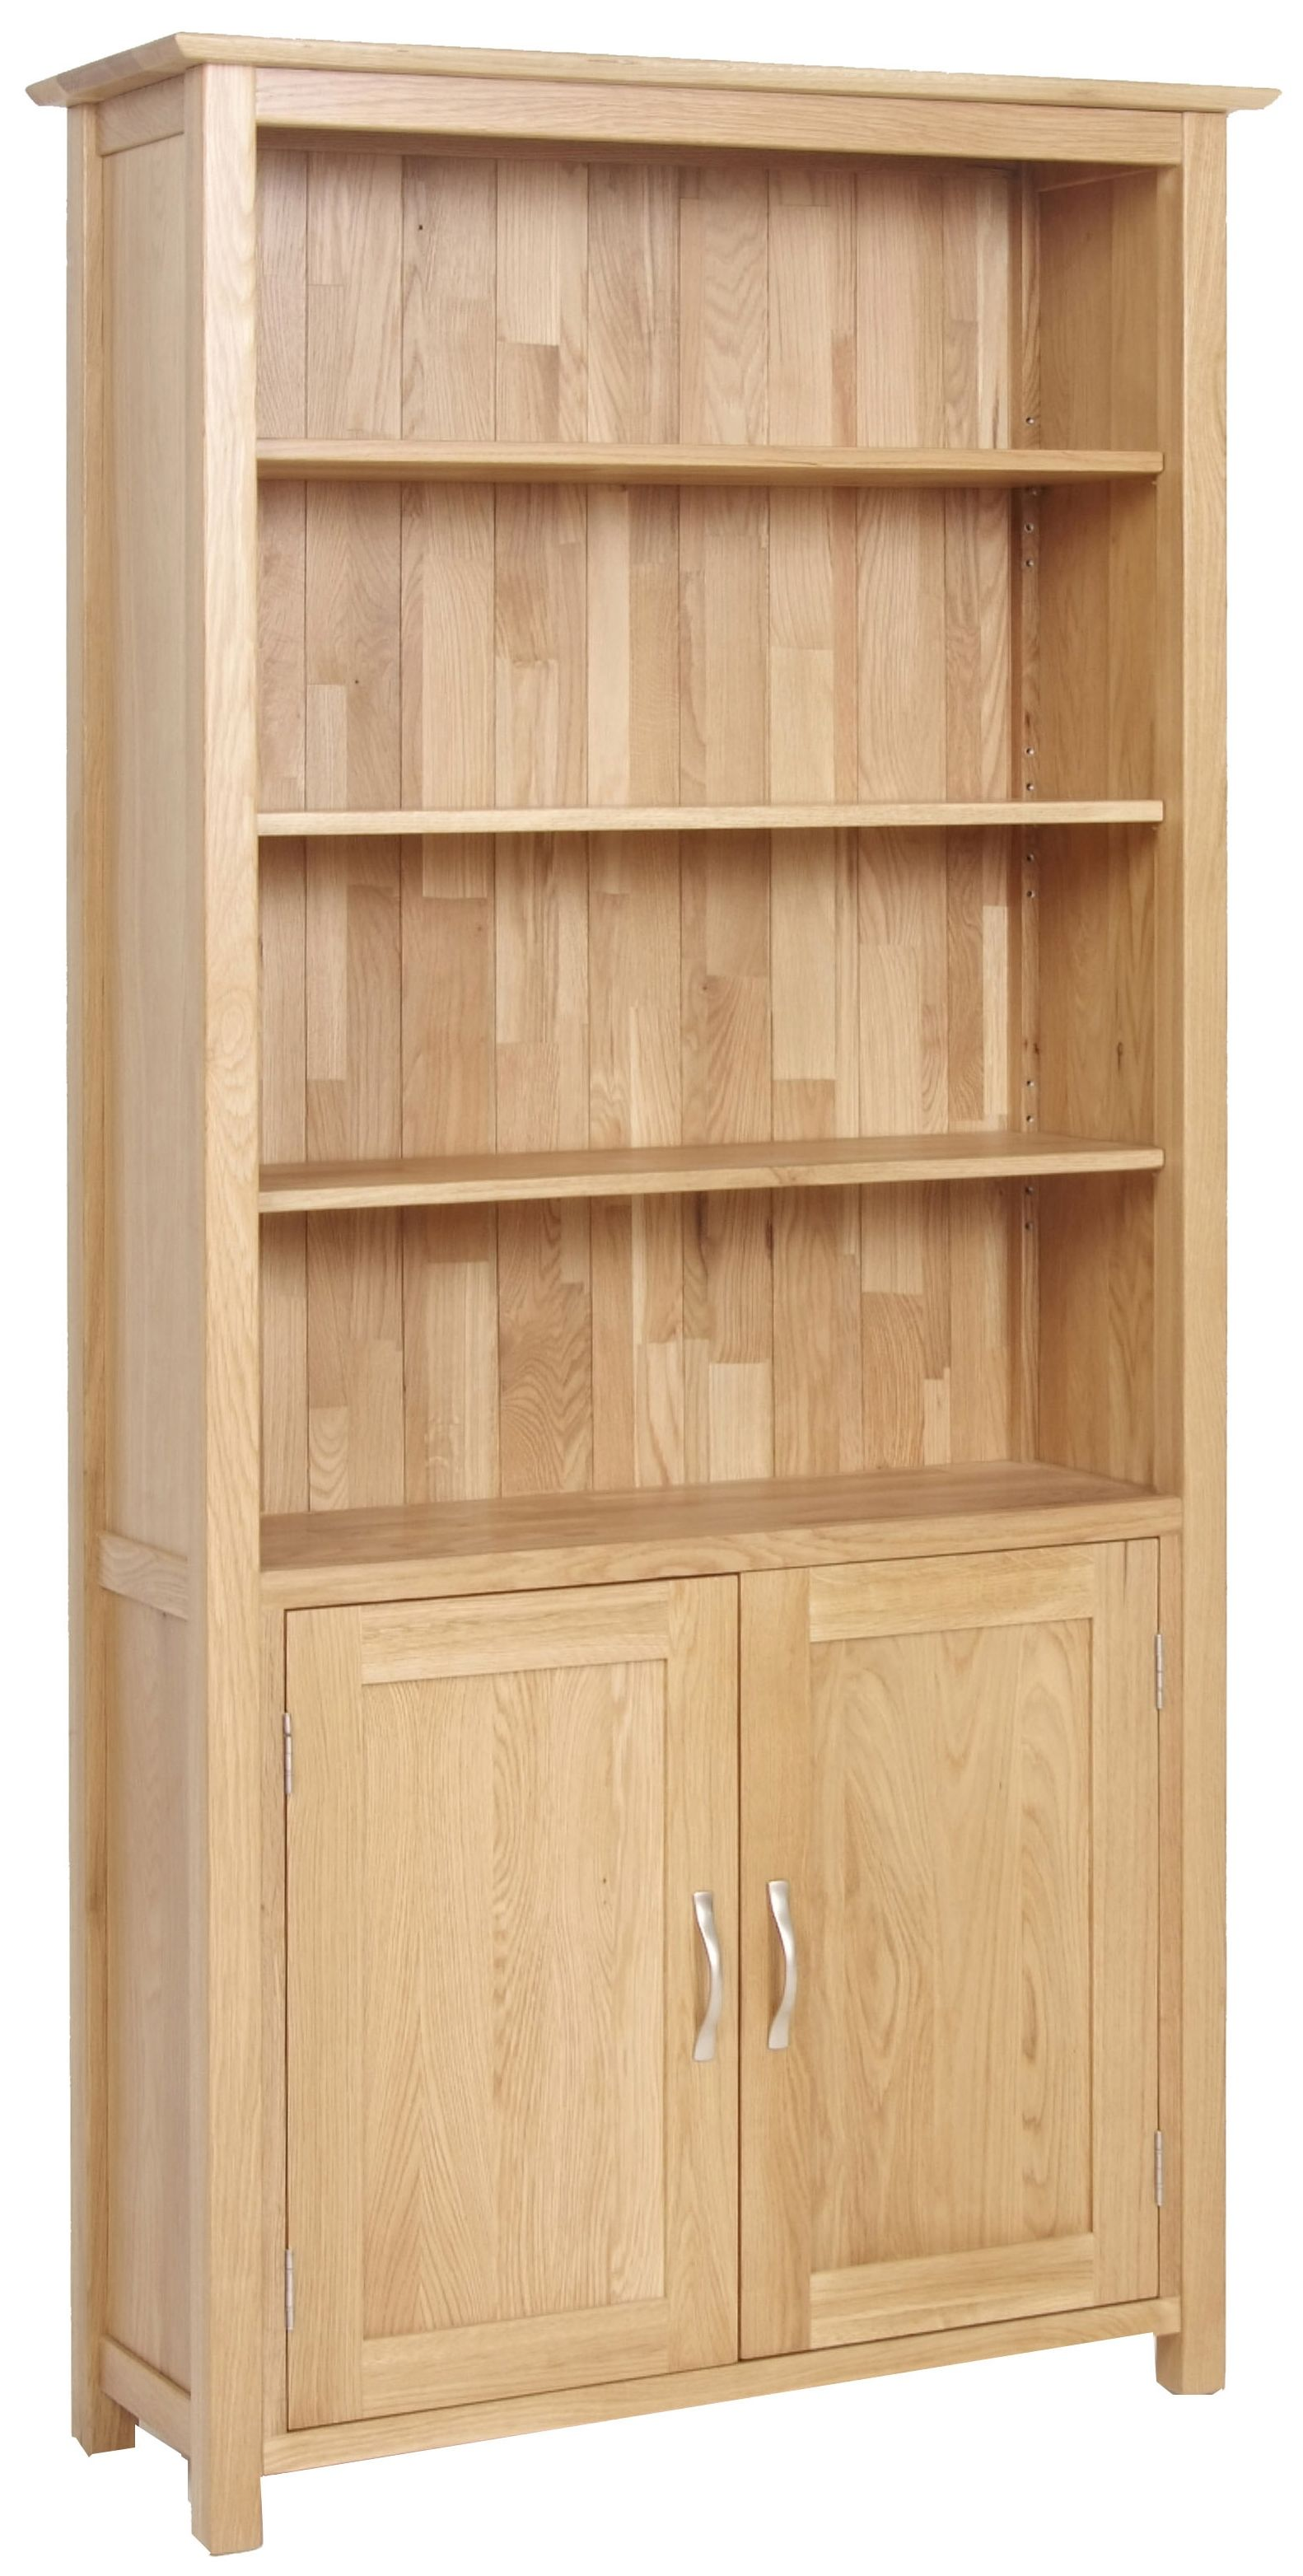 Branches Furniture Bristol Exeter Range 2 Door Light New Oak Bookcase With Doors Bookcase Tall Bookcases Wood Storage Cabinets